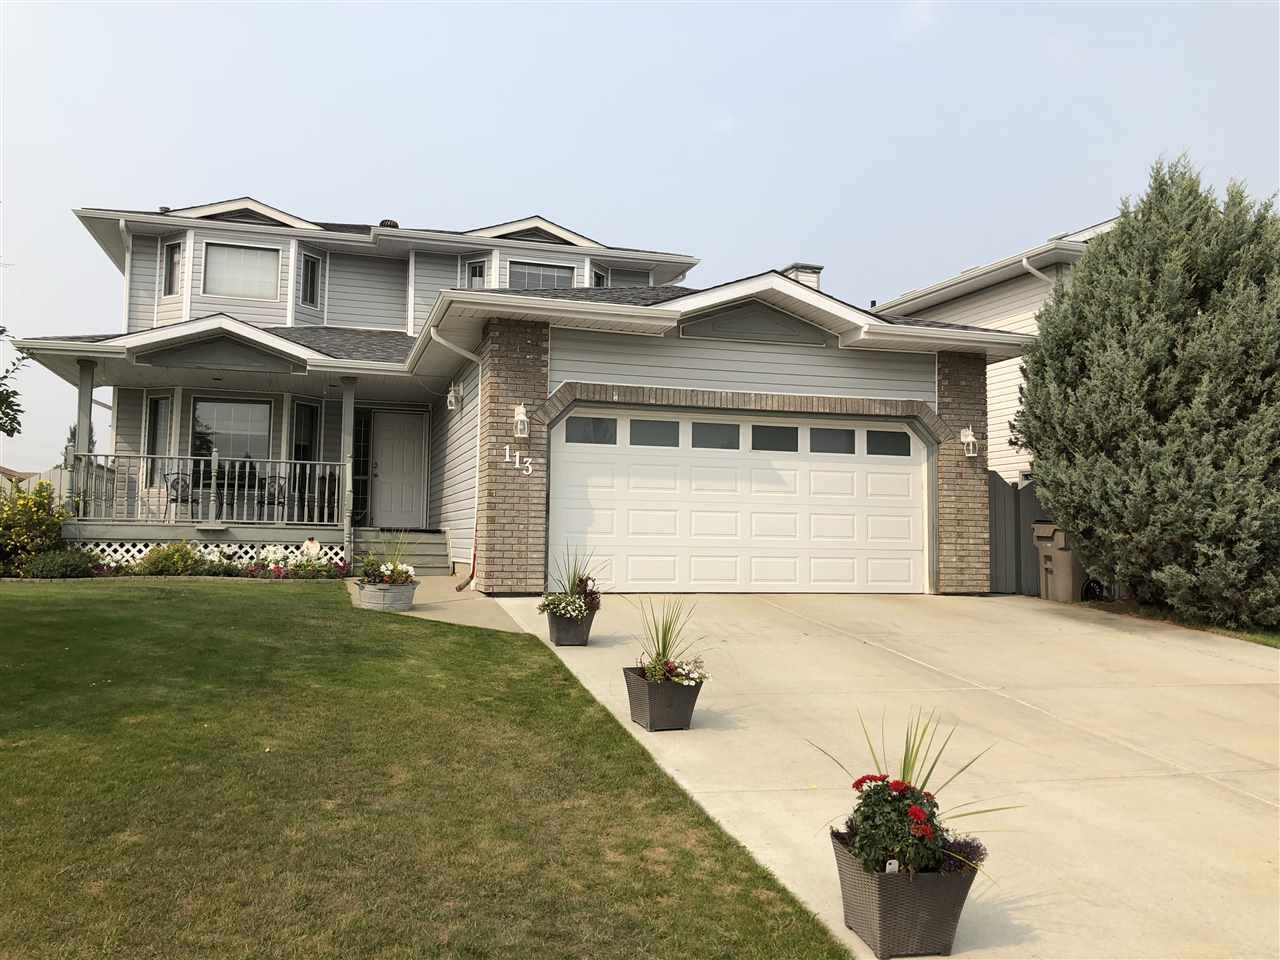 Main Photo: 113 Pipestone Drive: Millet House for sale : MLS®# E4126838